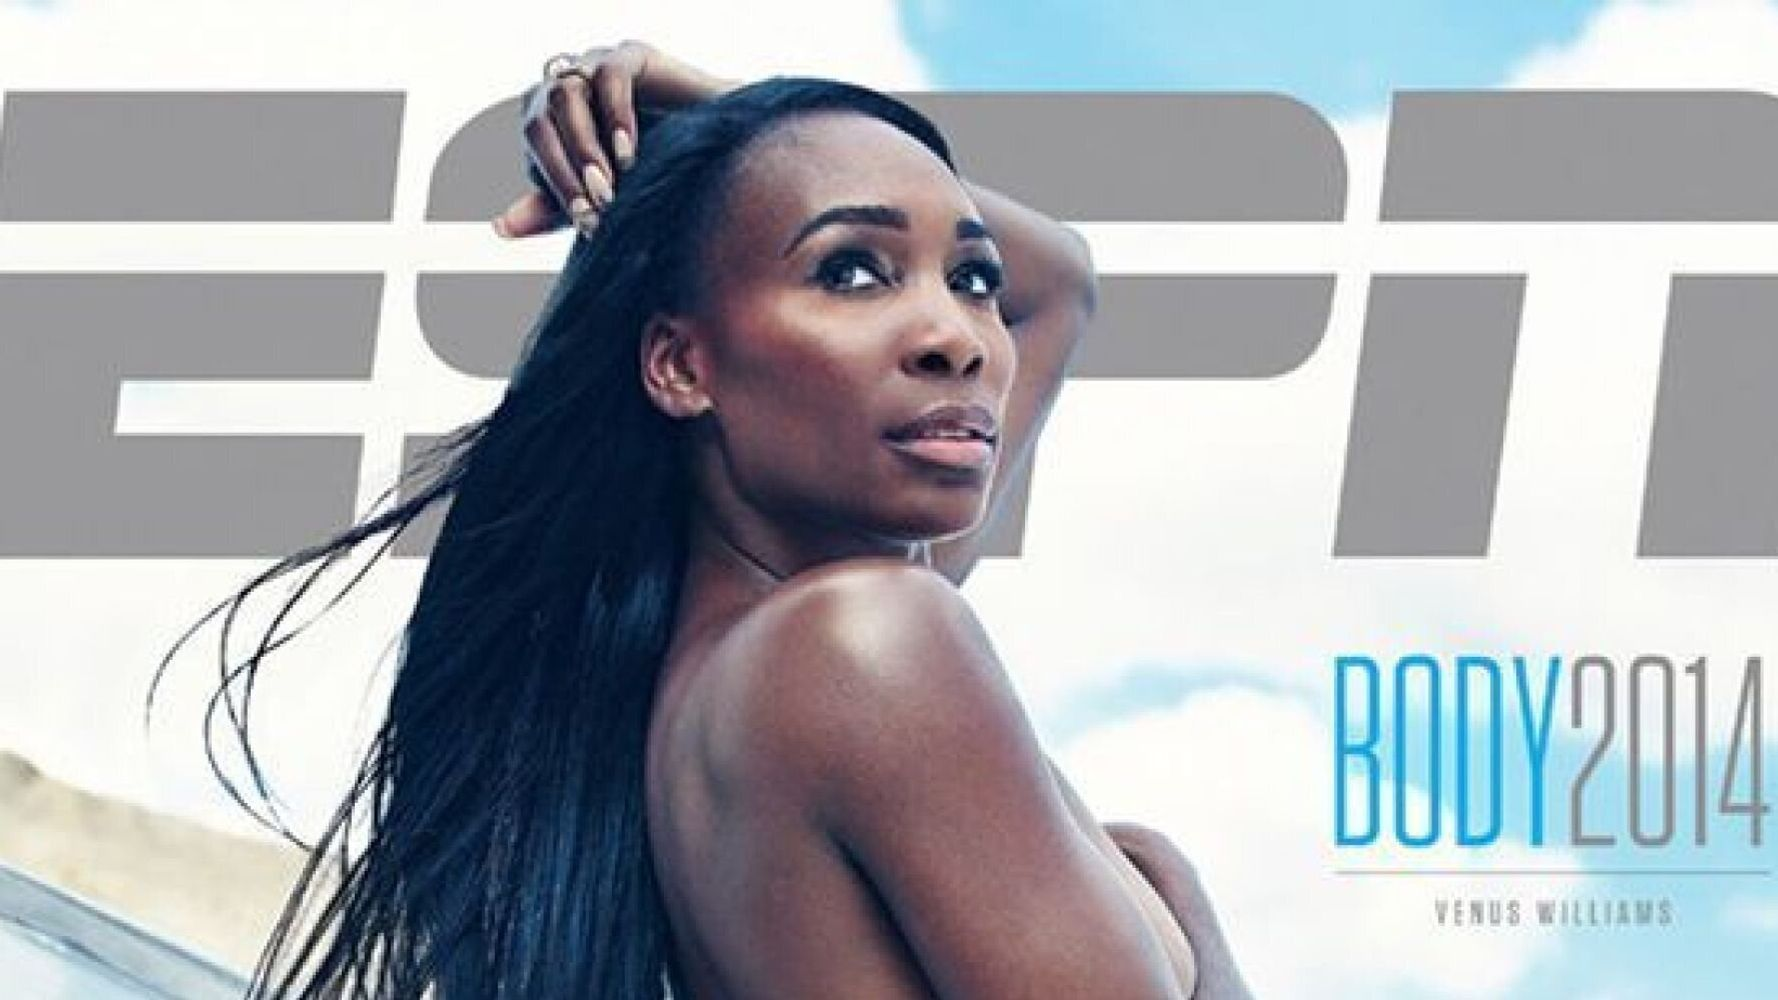 Venus Williams Naked Espn Cover Why I Cant Stop Looking -9177